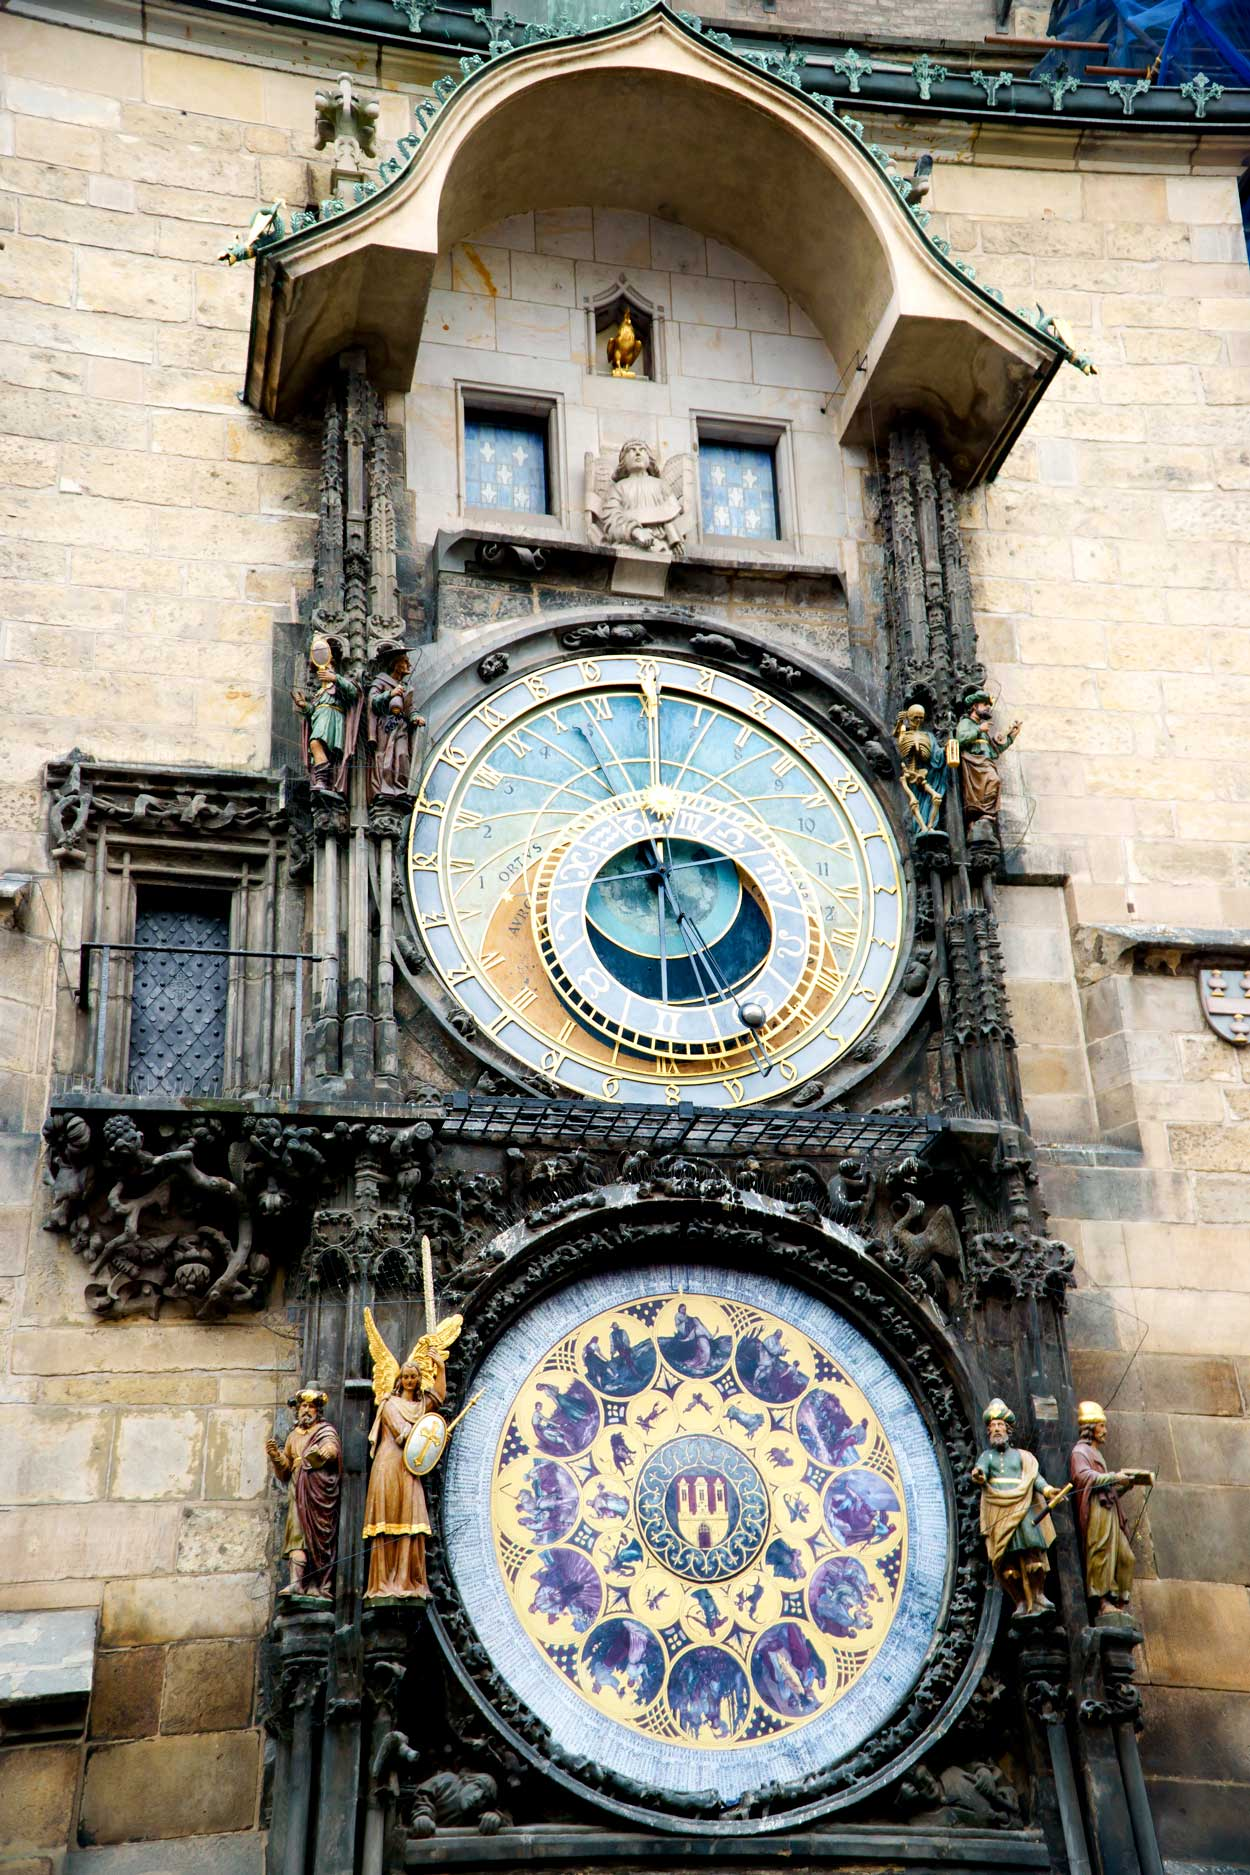 The Prague Astronomical Clock in Prague 1.